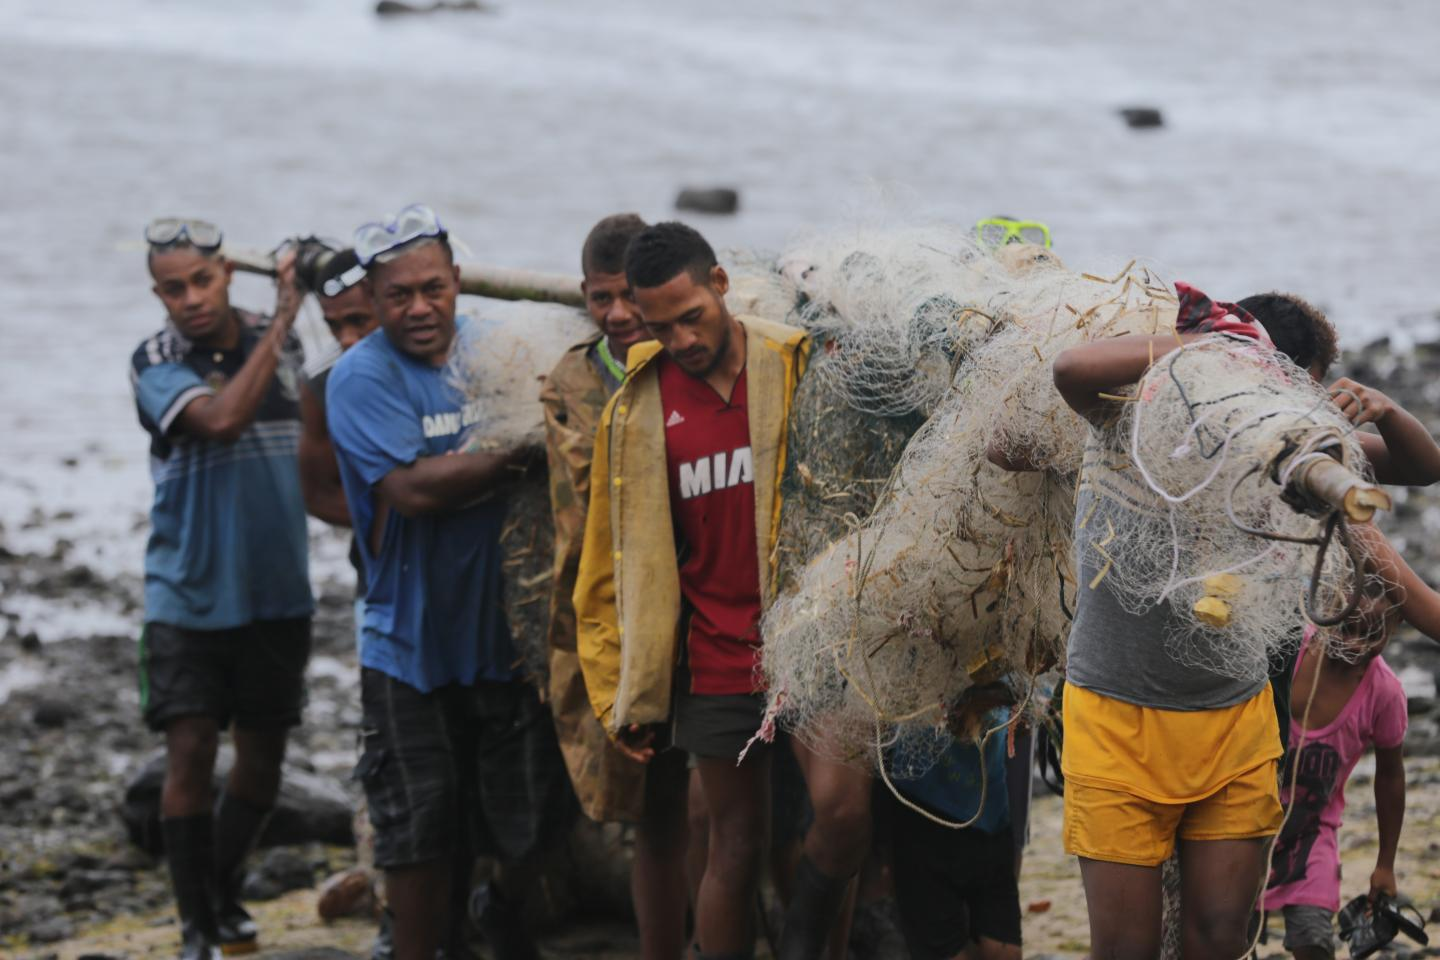 Fishers from Koro Island, Fiji, Hauling in the Catch after a Fish Drive during a Periodic Harvest